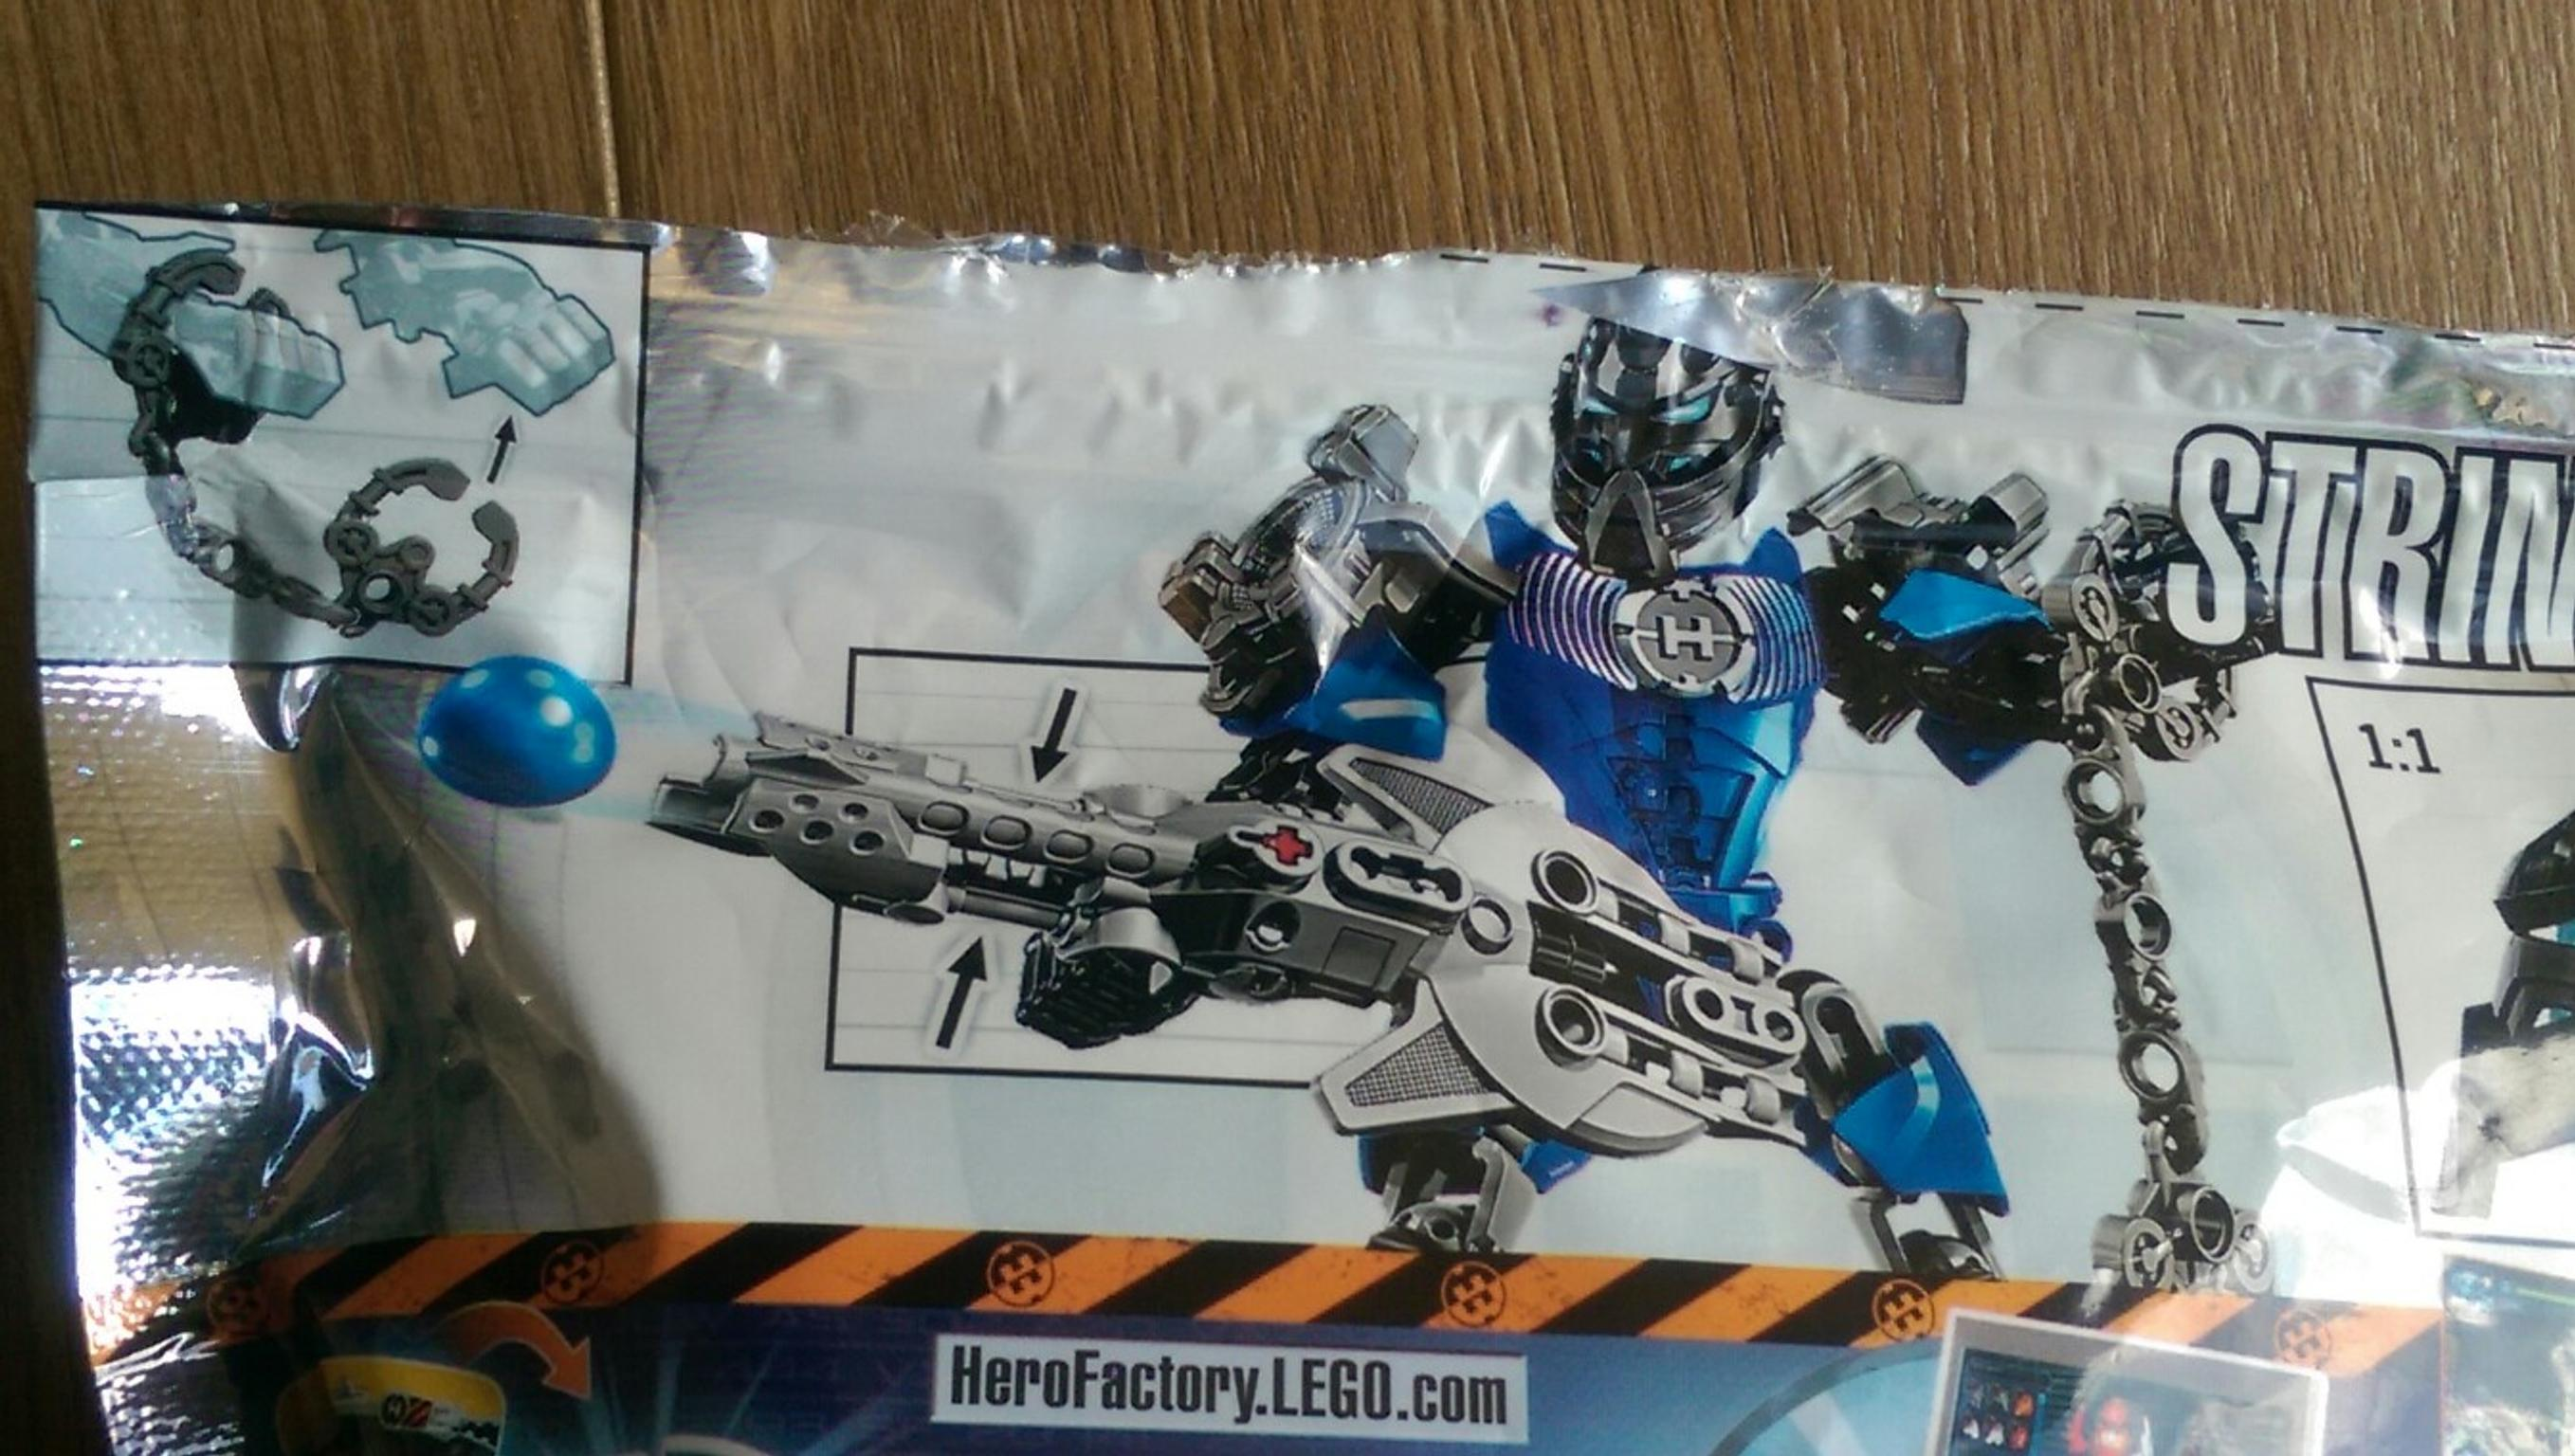 Lego Hero Factory Stringer Toy Excel Cond